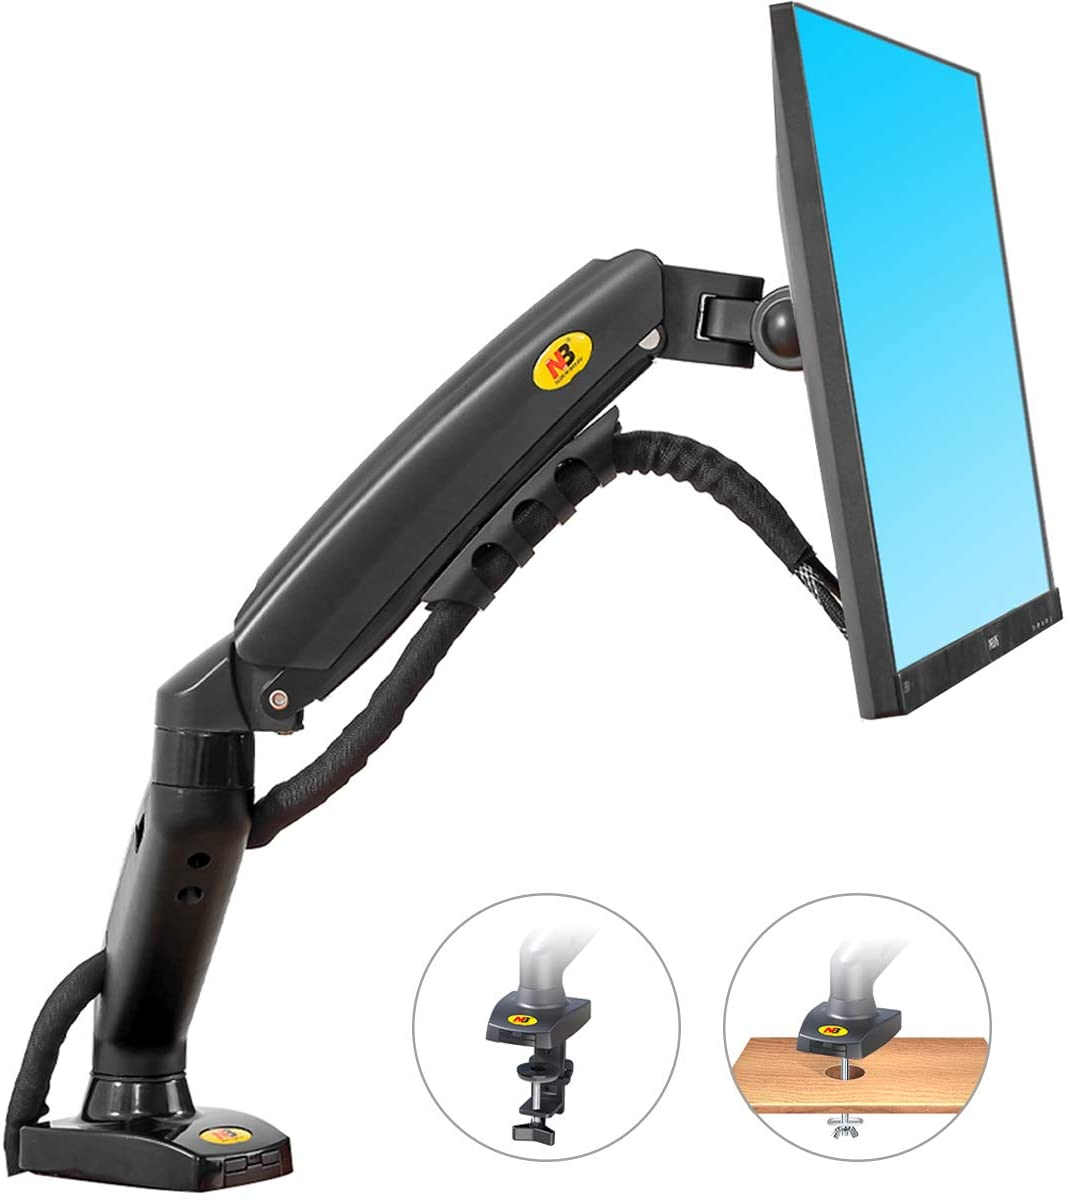 Table Mount image